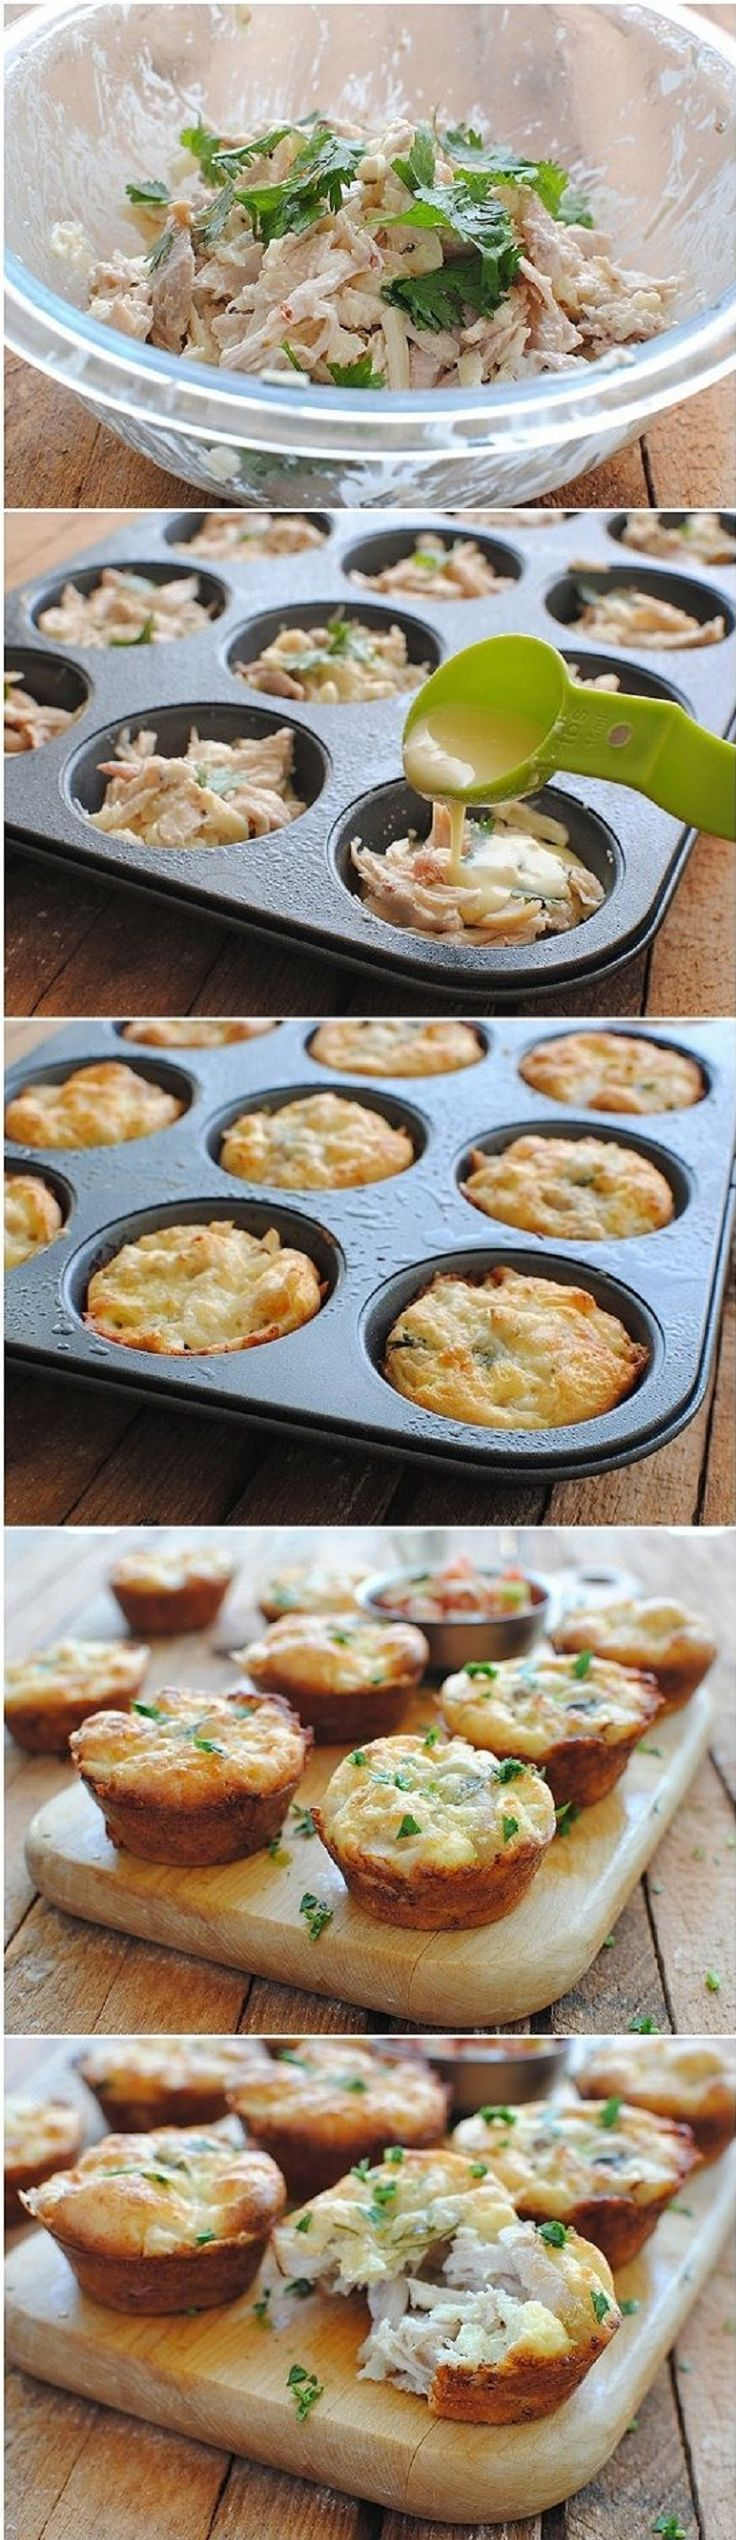 Mini Tex-Mex Chicken and Cheese Pies - 14 Delightful Thanksgiving Dinner Minis   GleamItUp